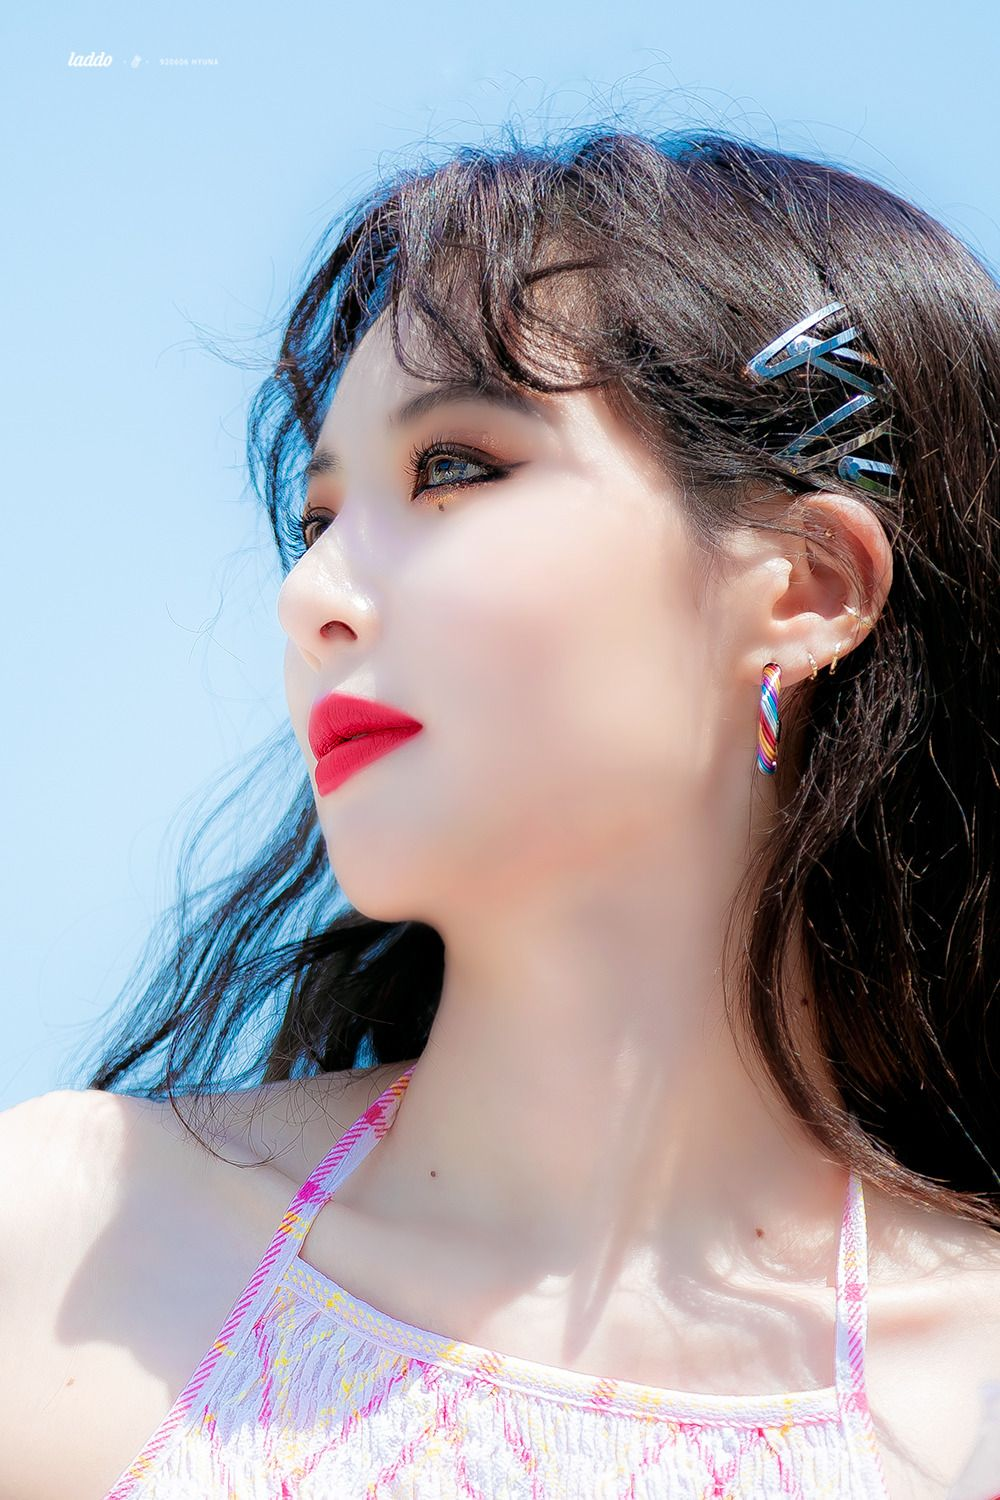 Pin by Favidols on From Reddit in 2019 | Kpop, Hyuna kim